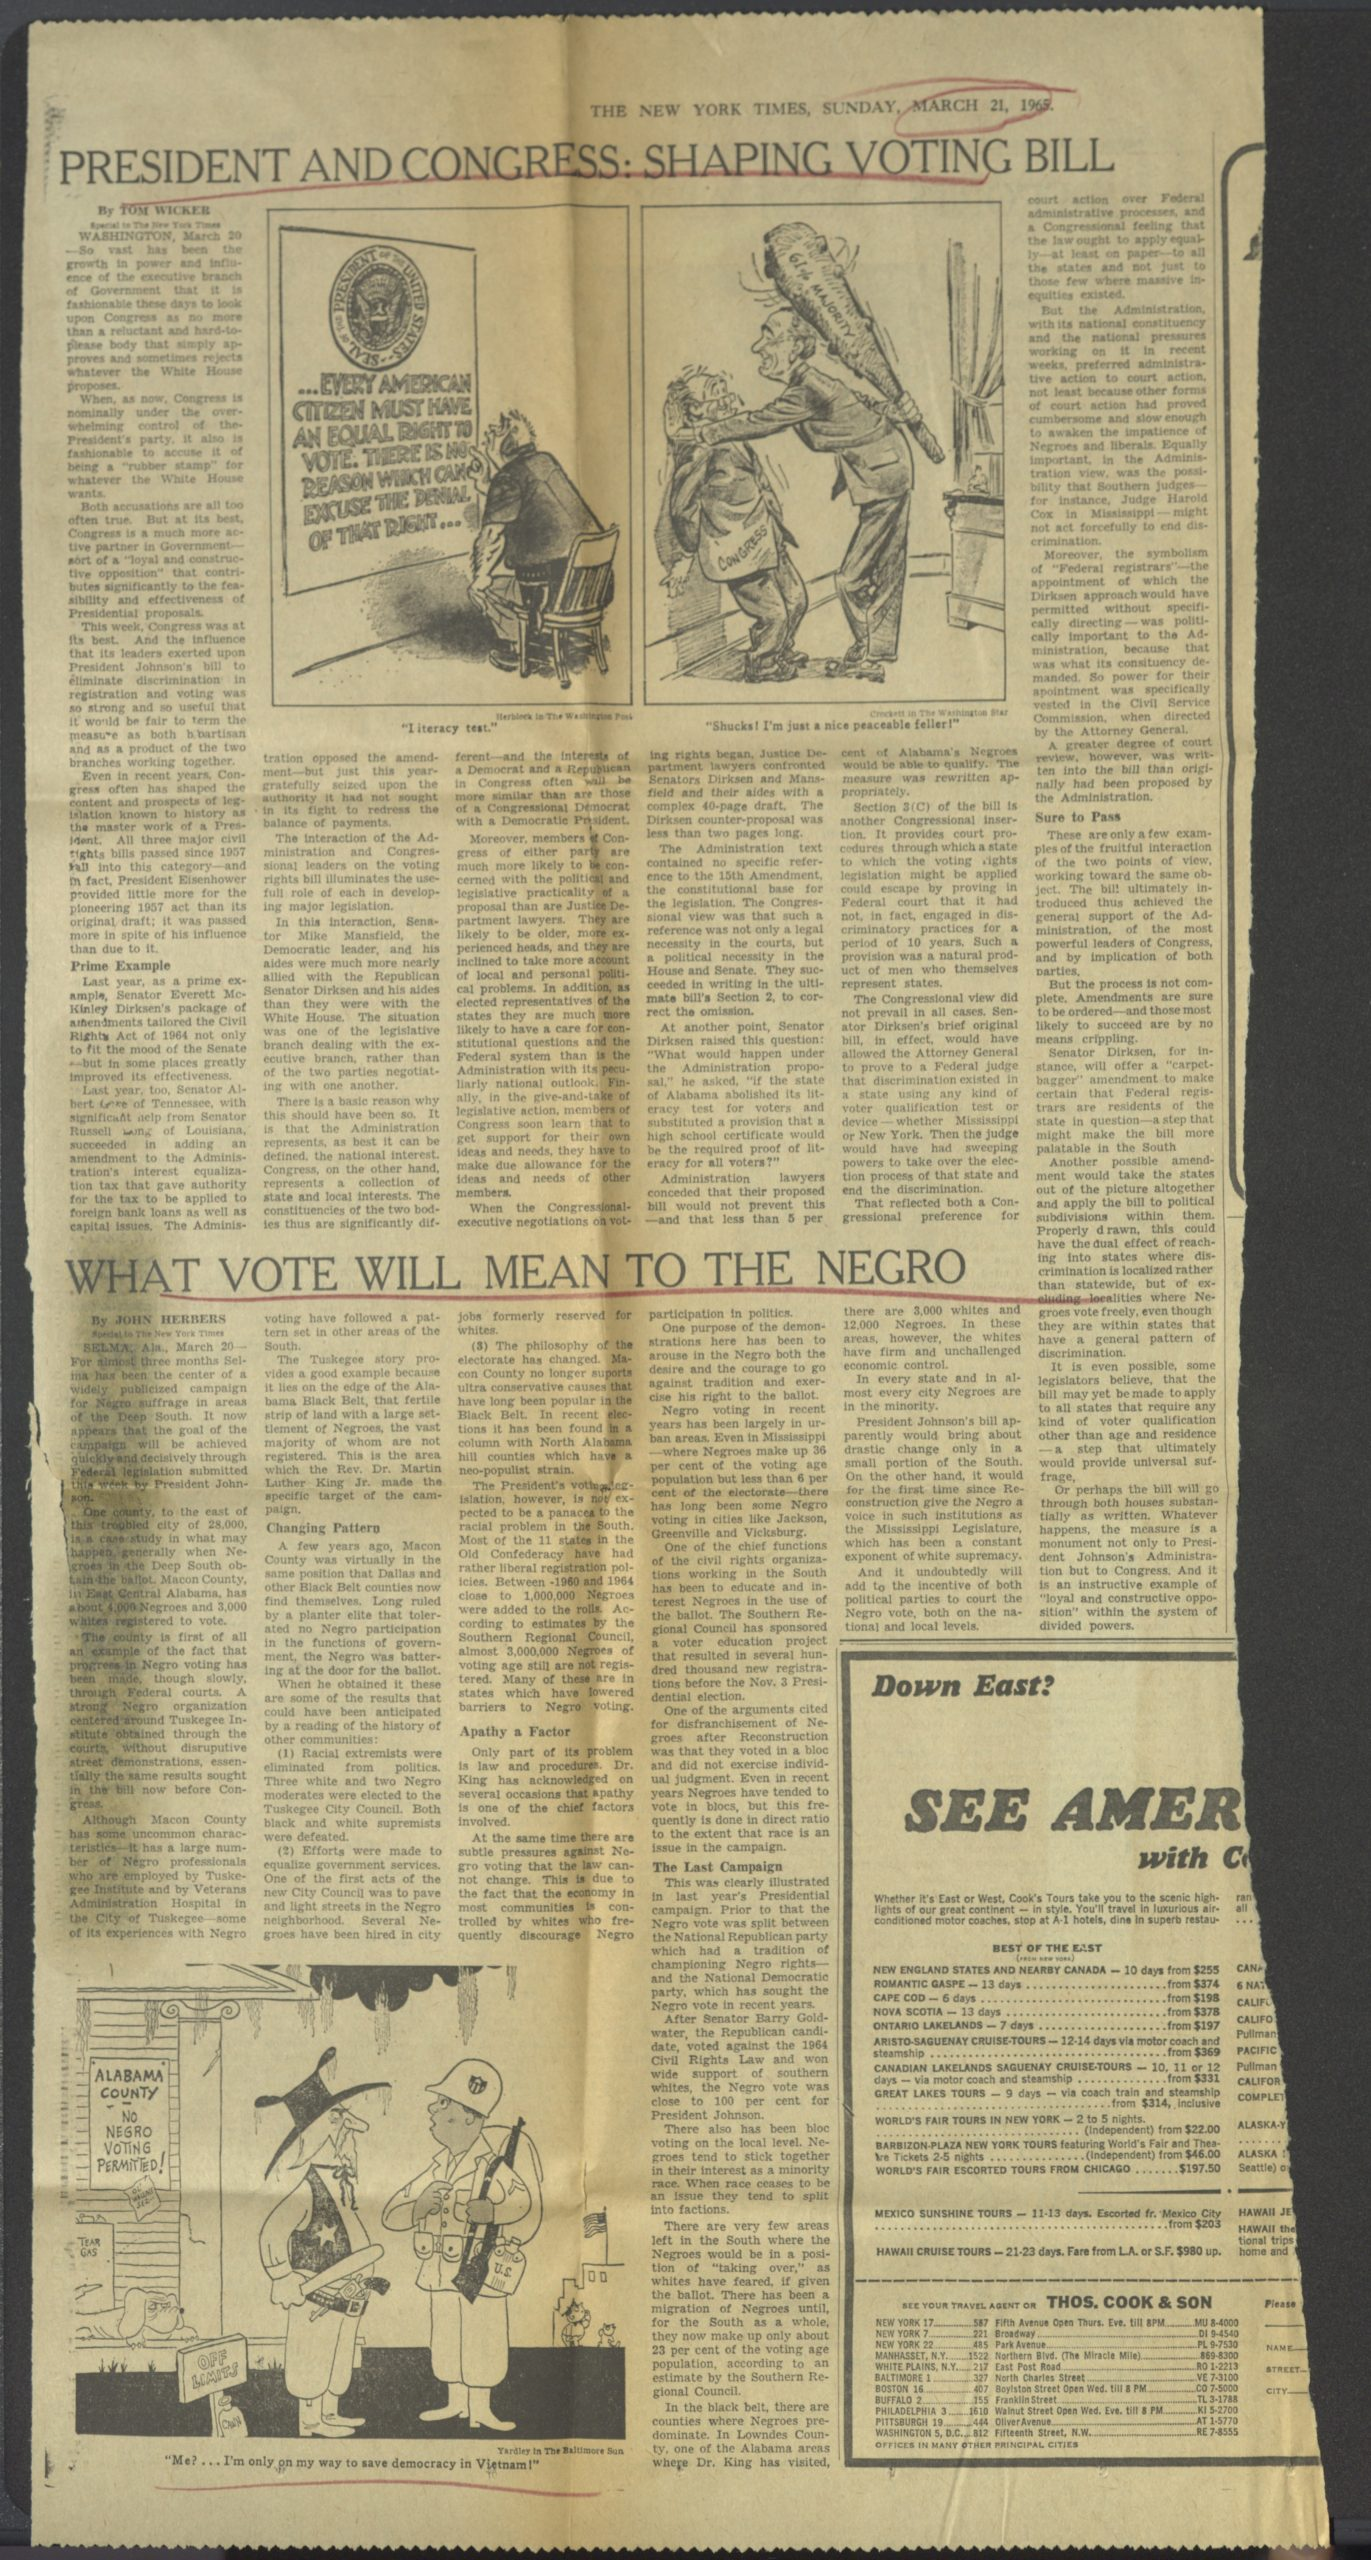 President and Congress: Shaping Voting Bill, The New York Times1965 March 21Johnson Publishing Company Clippings File Collection